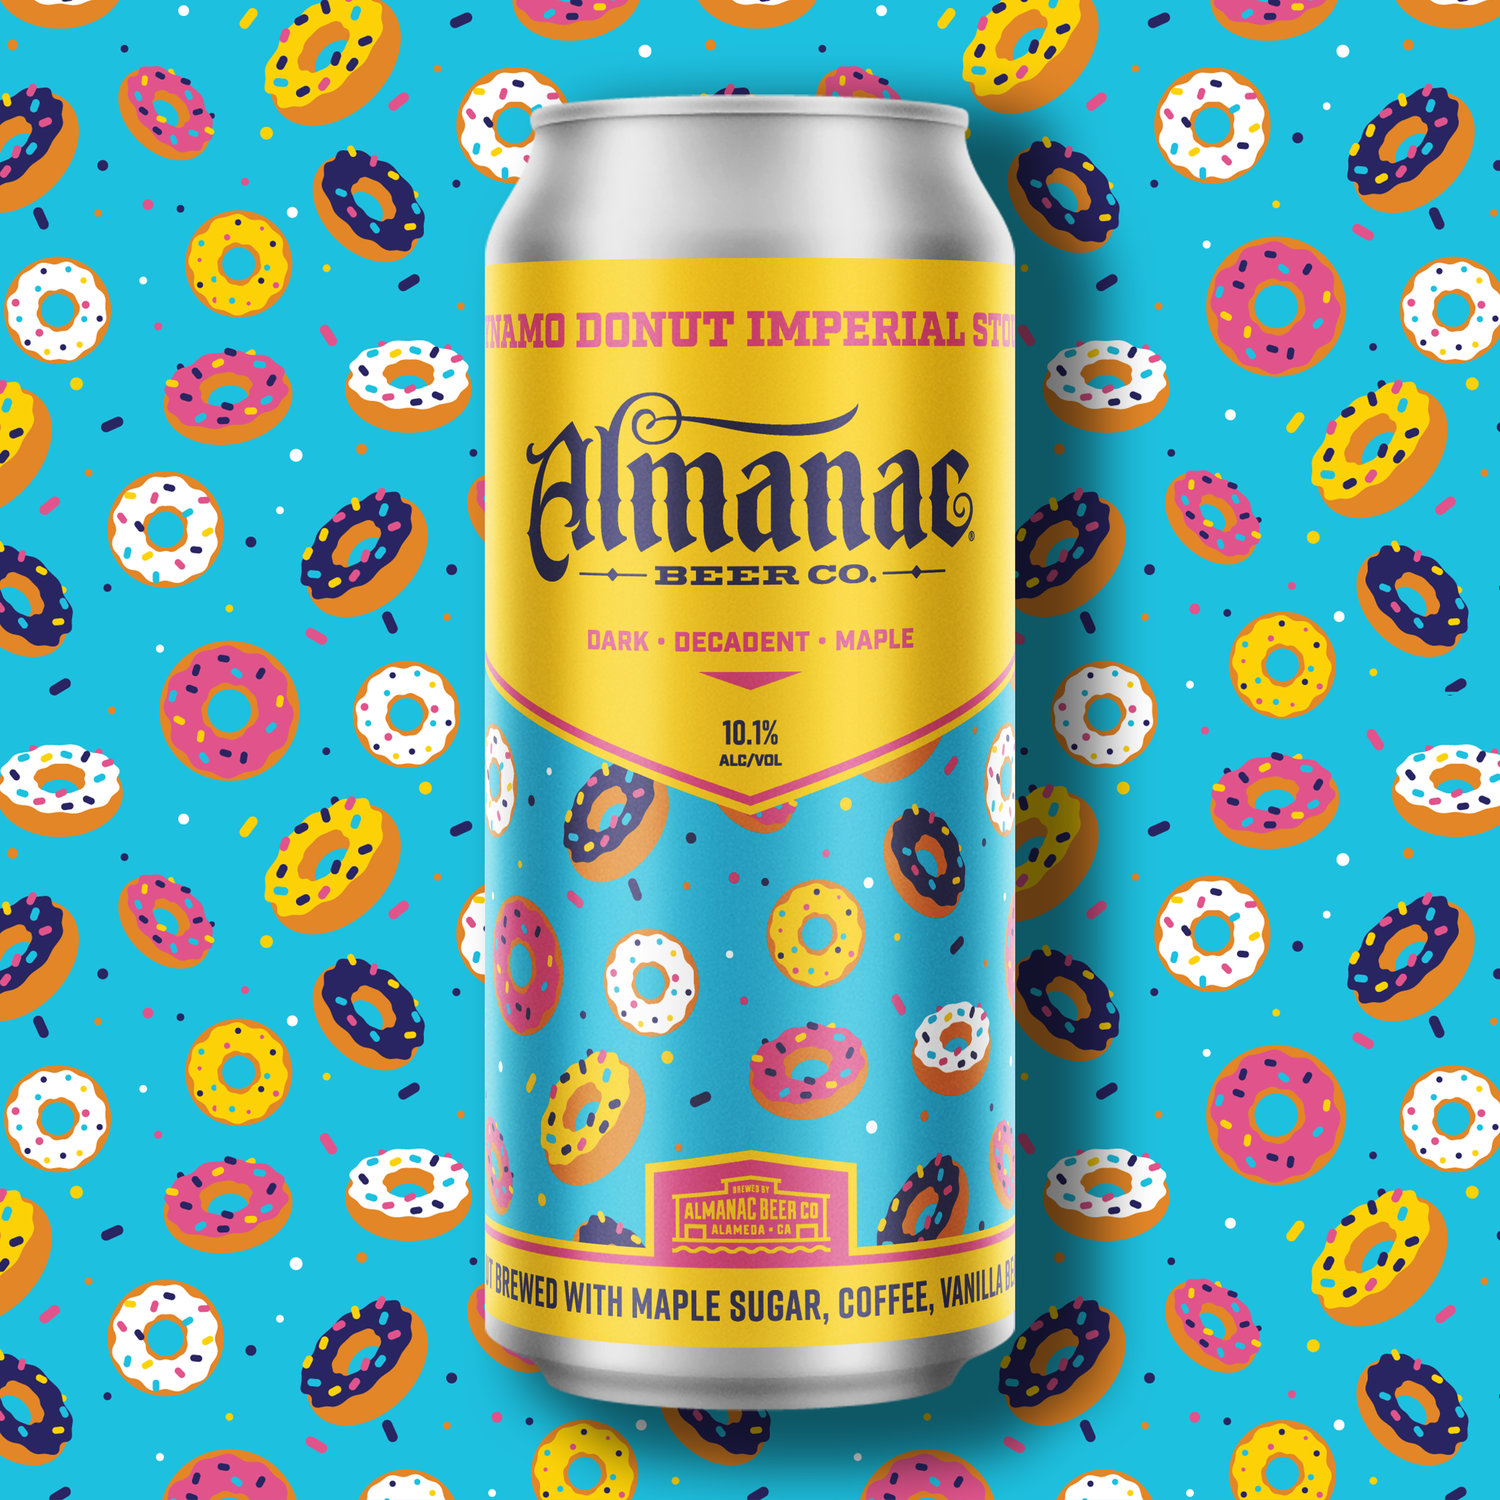 Dynamo+Donut+Imperial+Stout+can+design+by+DKNG.jpg